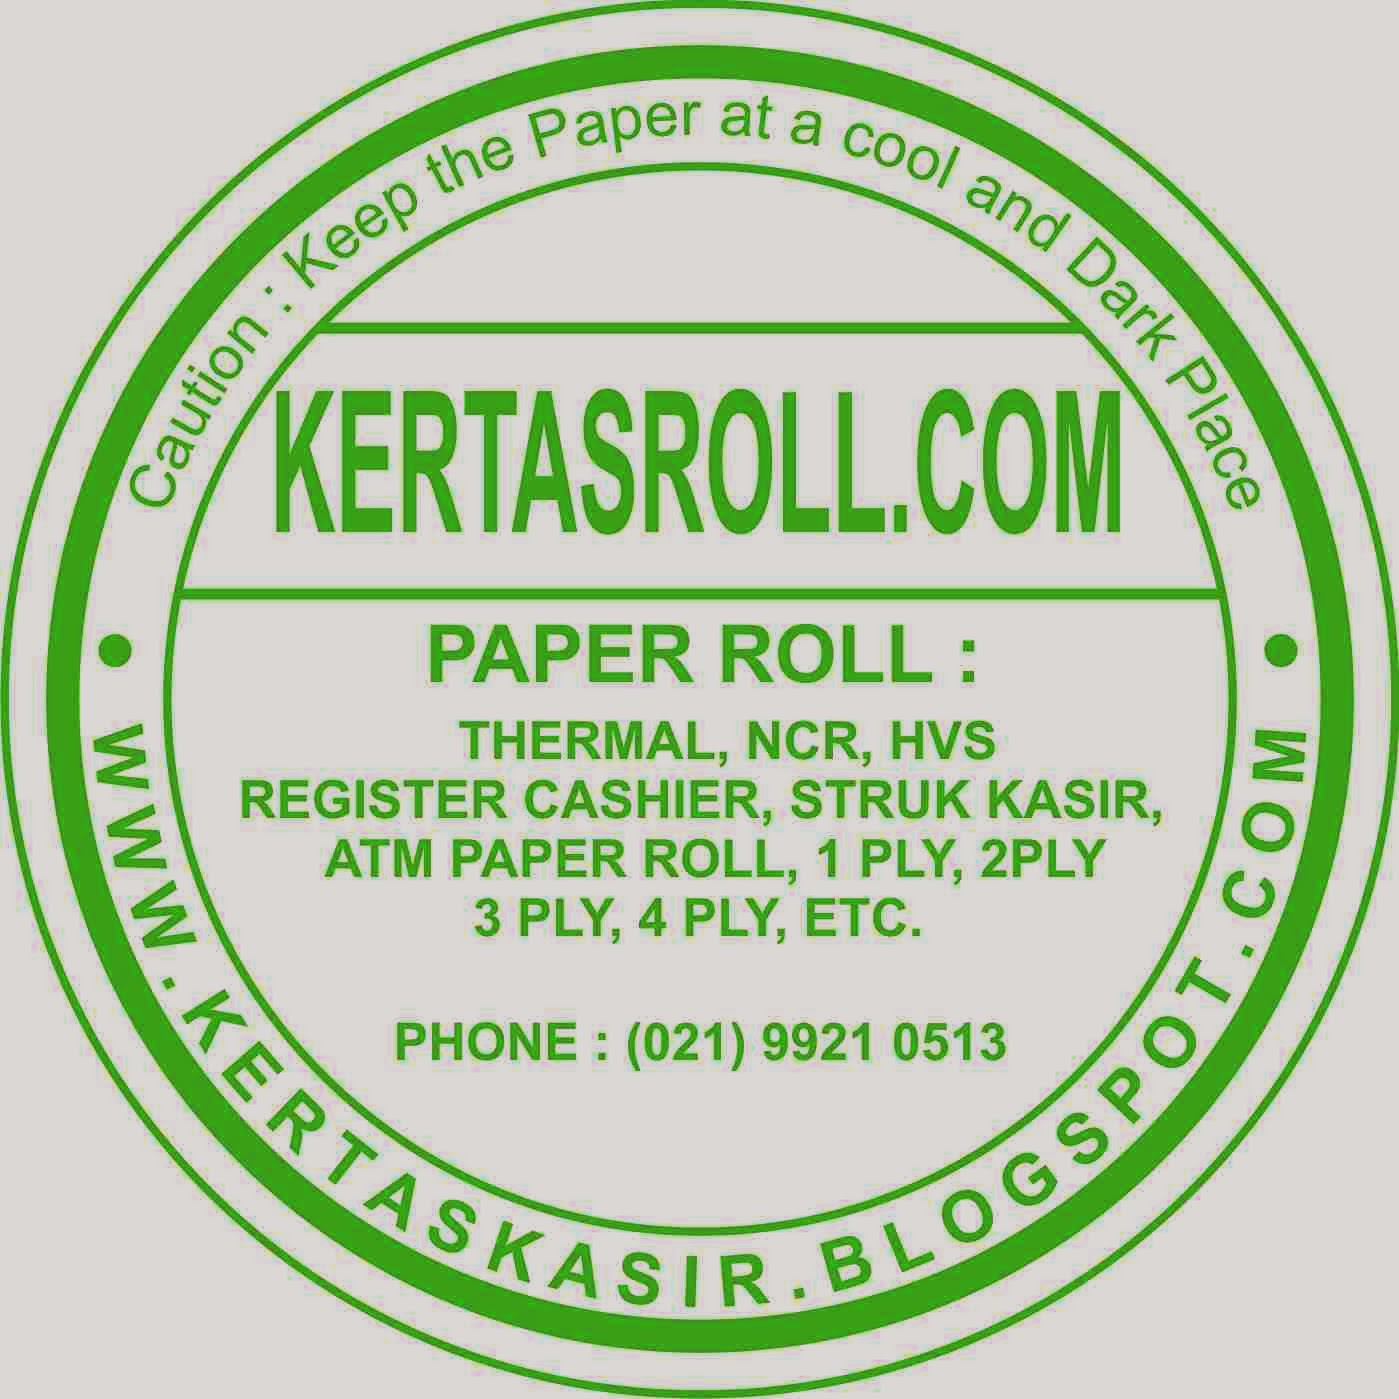 kertas roll struk kasir register cash paper roll manufacturer